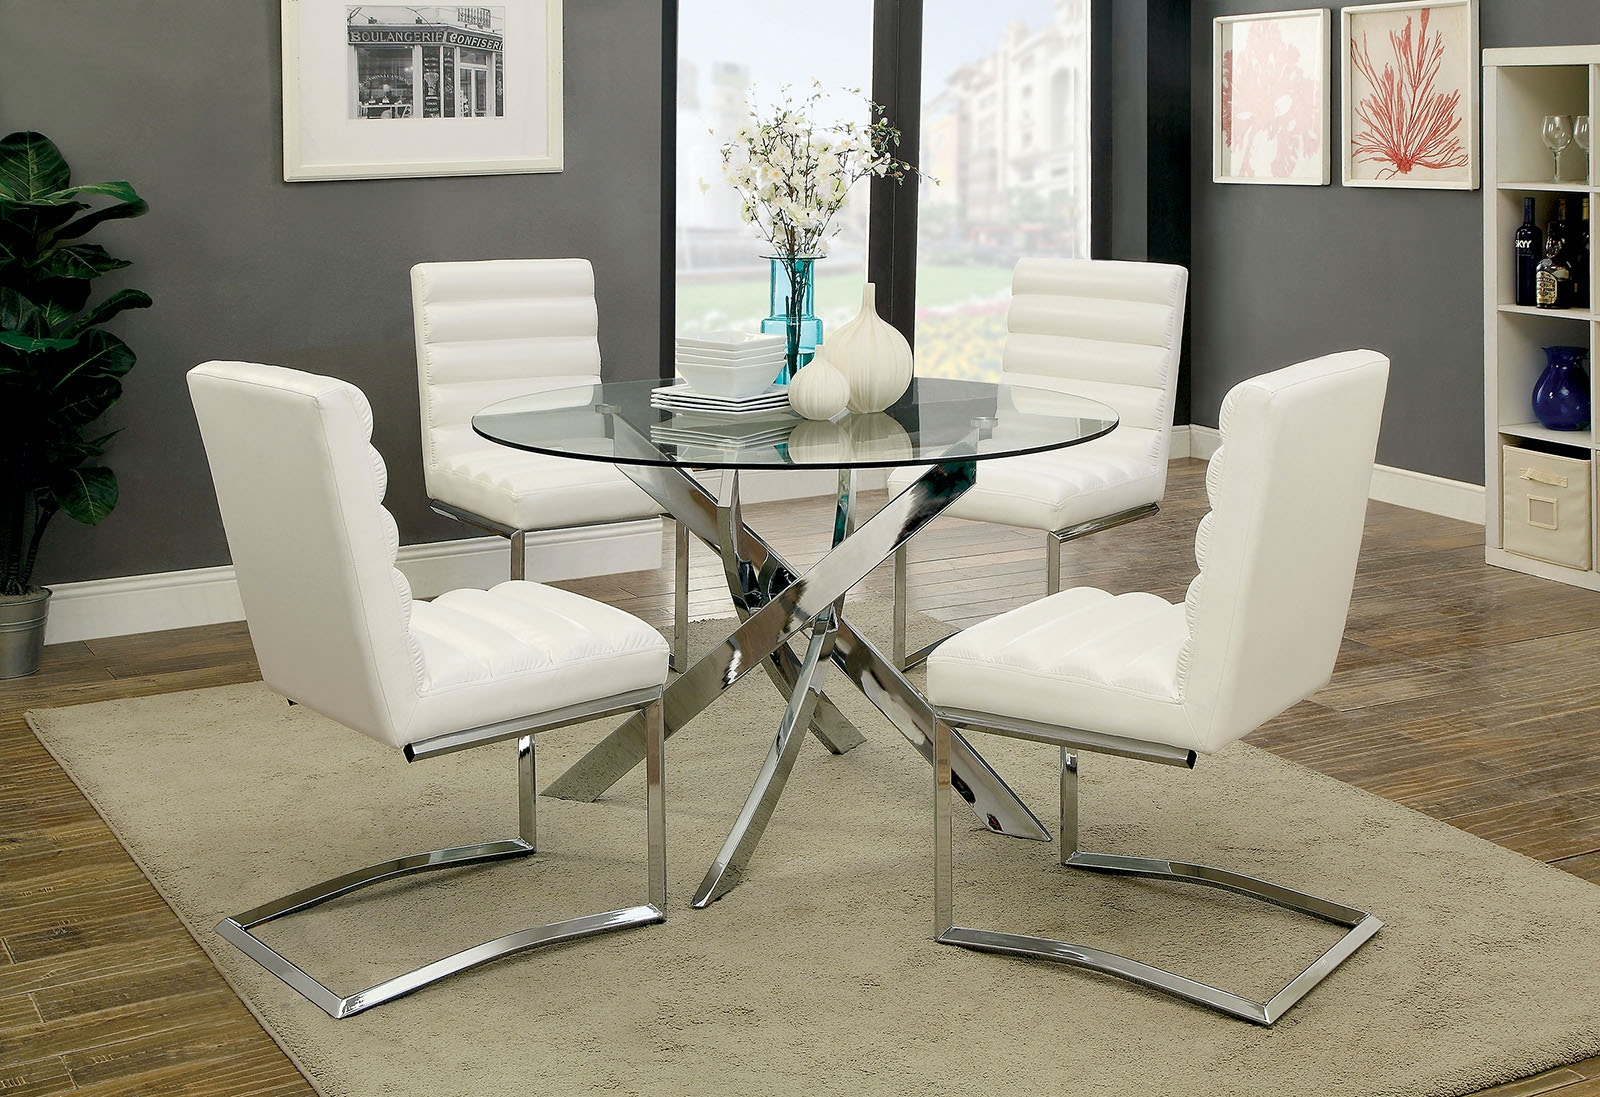 Furniture Of America Dining Room Dining Table CM3381T TABLE   The Furniture  Mall   Duluth, Doraville, Kennesaw And The Chamblee, GA